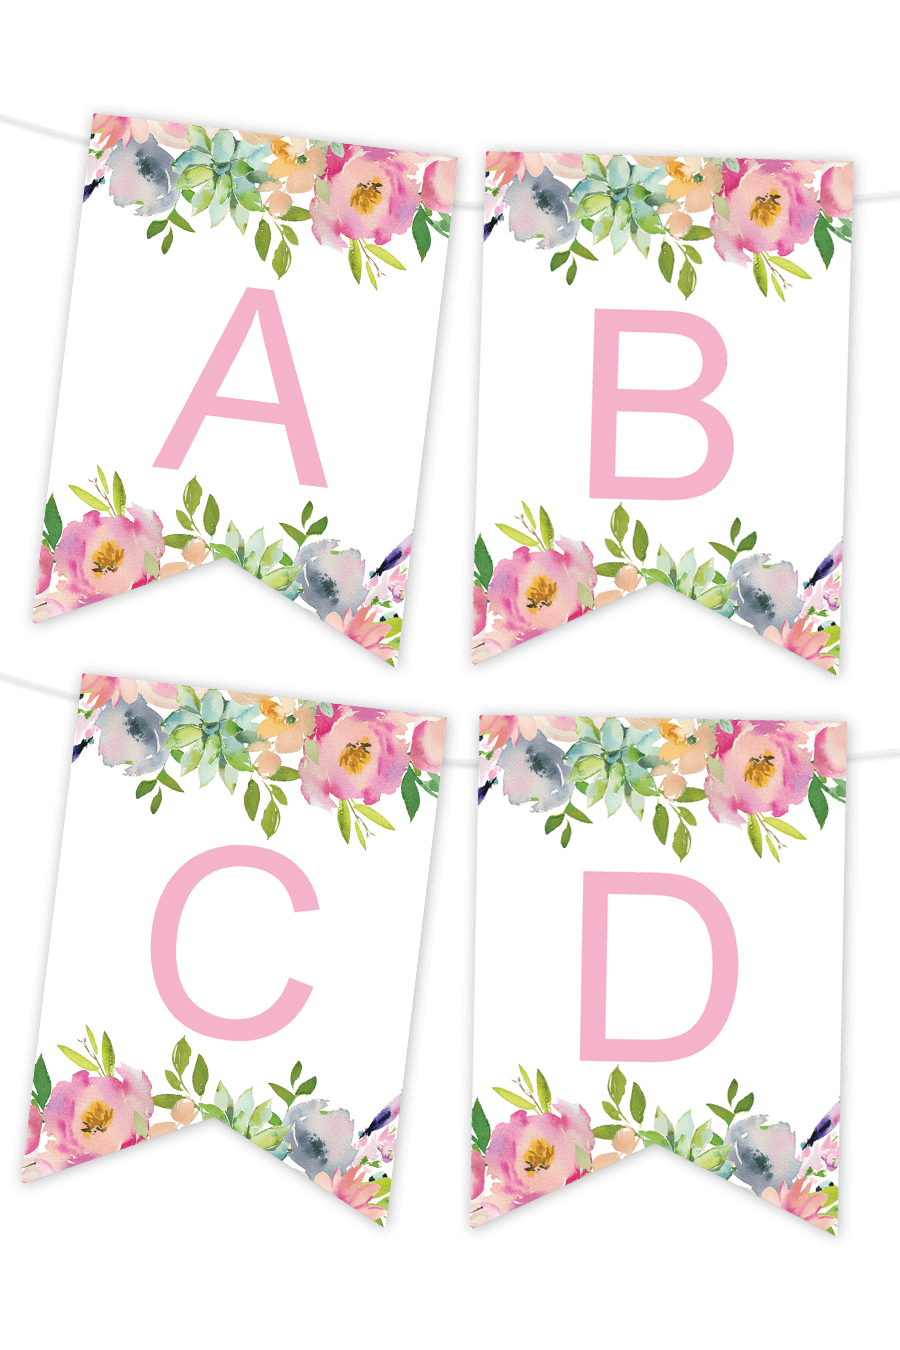 Printable Banners - Make Your Own Banners With Our Printable Templates - Free Printable Pink Banner